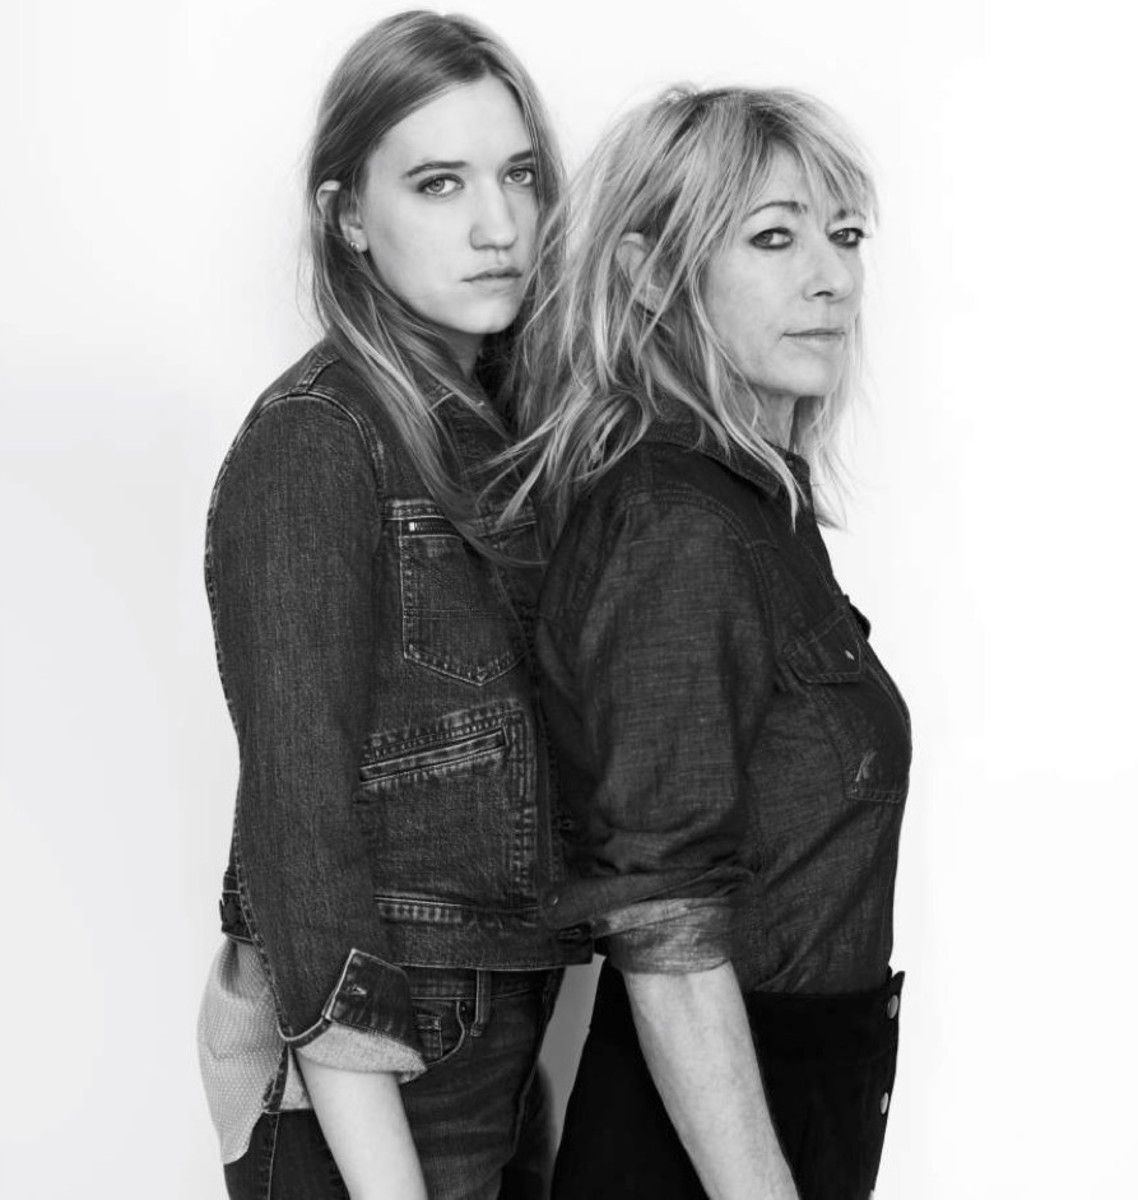 Coco Gordon Moore and Kim Gordon in Madewell x Daryl K. Photo: Madewell